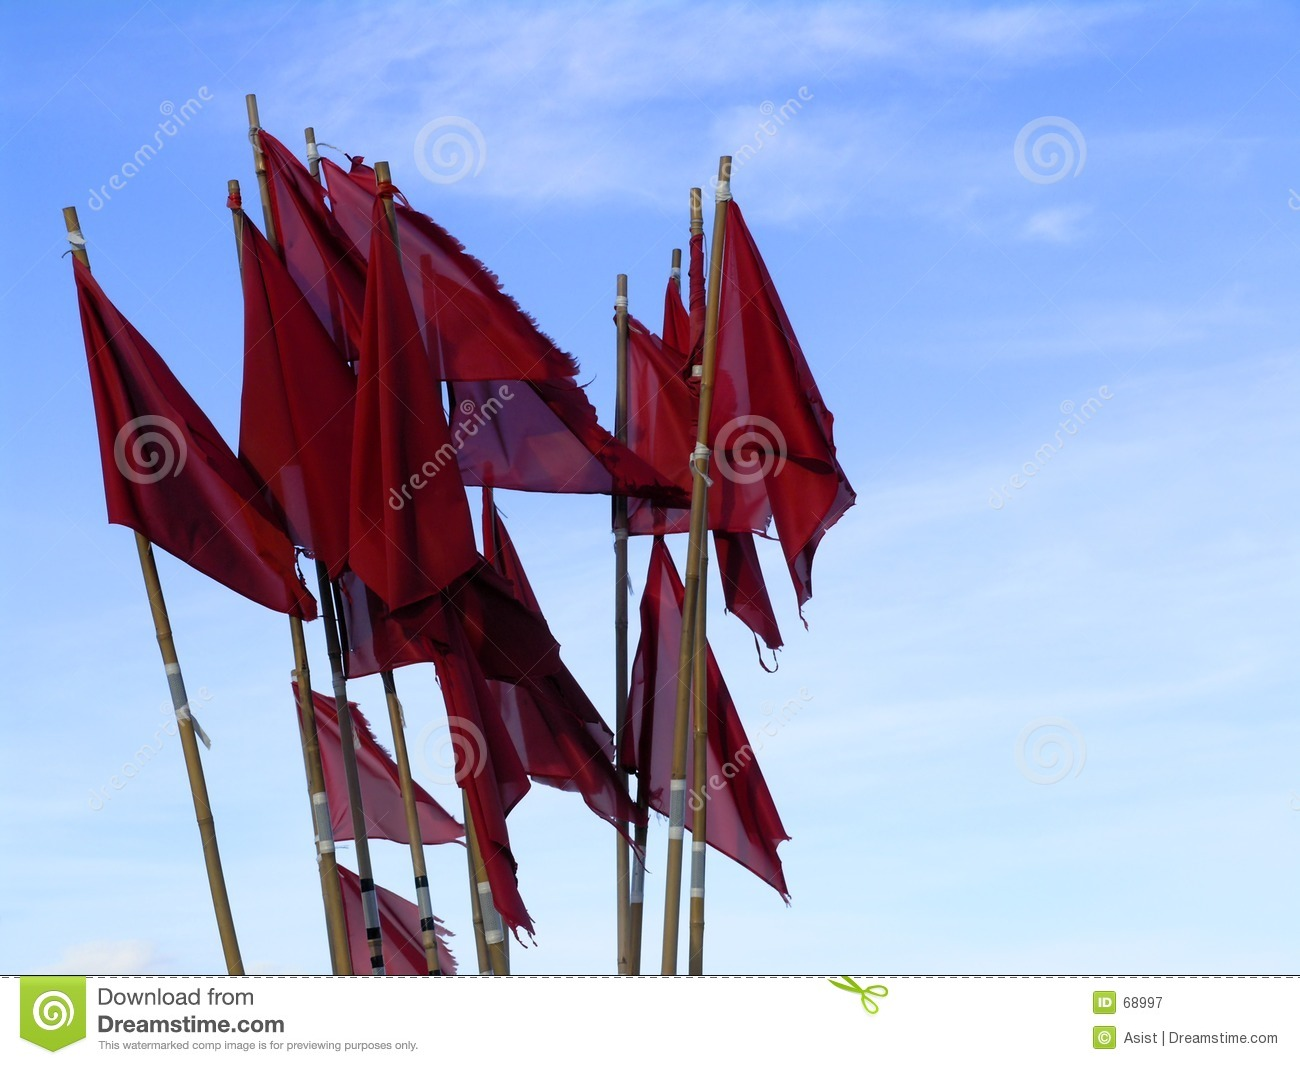 Red flags on bouys